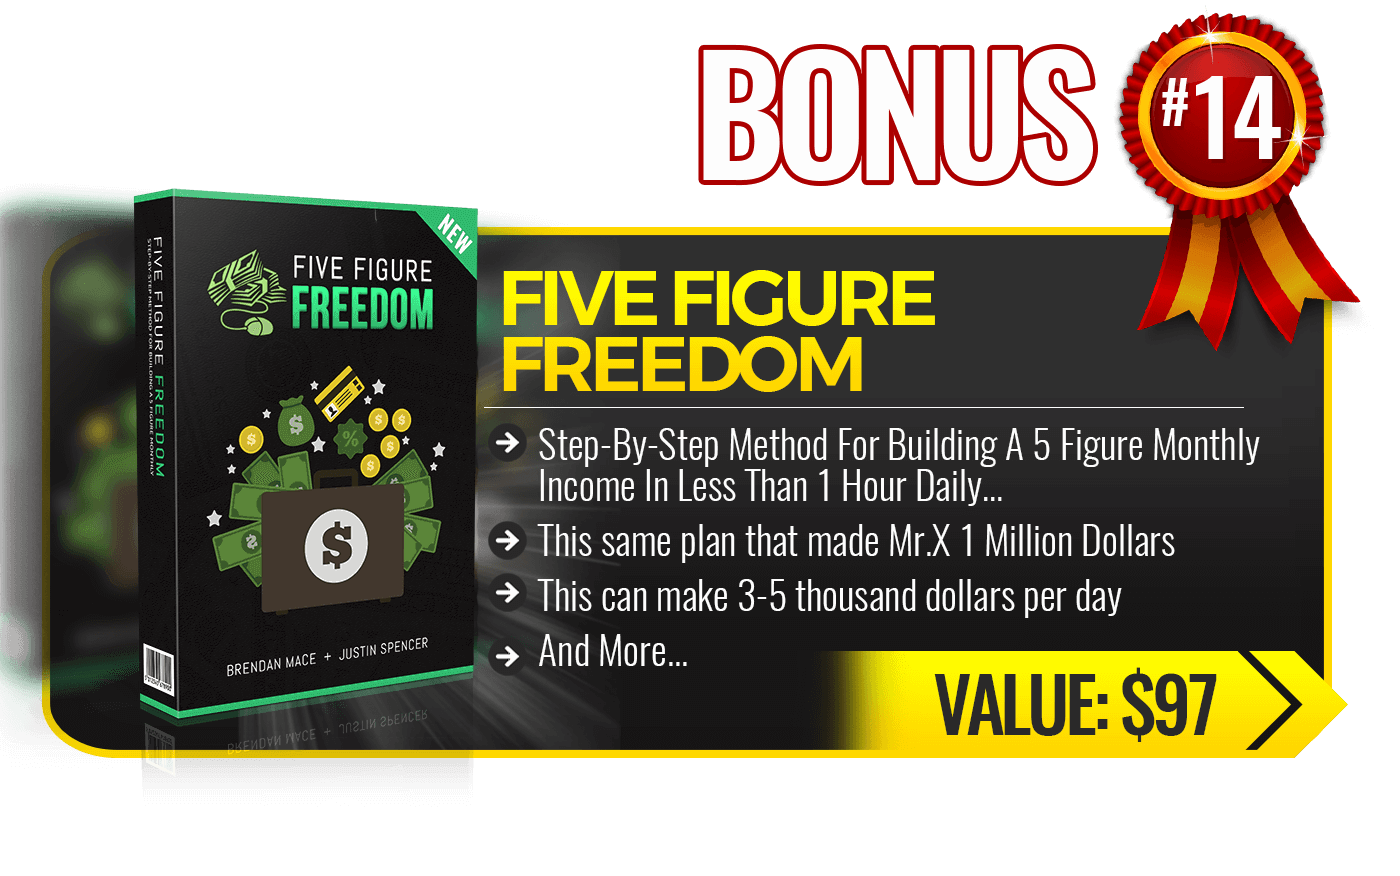 14. Fove Figure Freedom